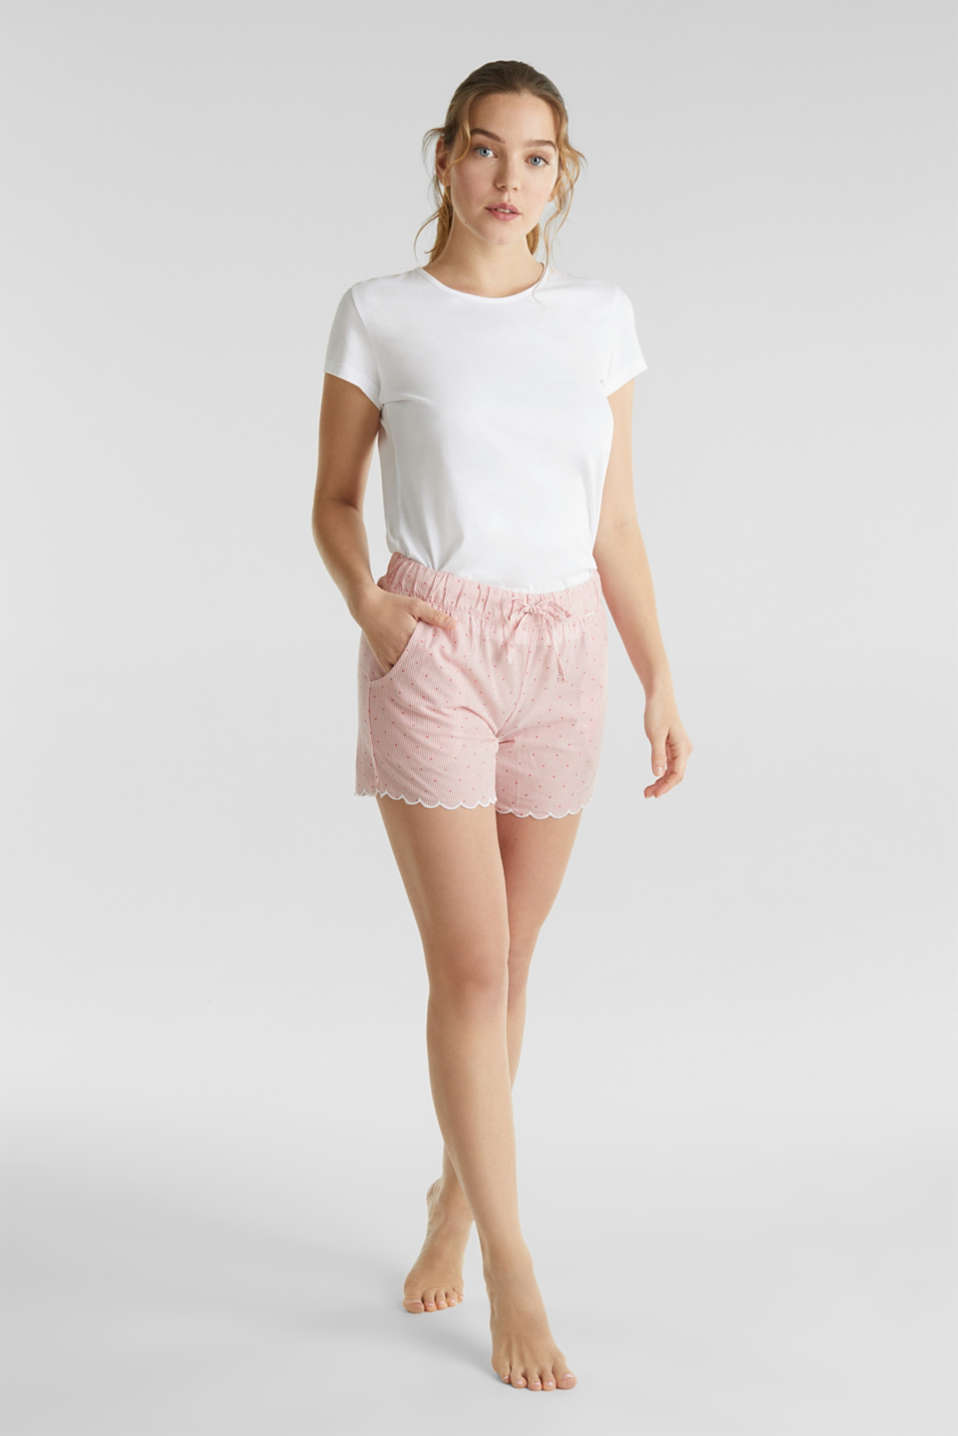 Woven shorts with a jacquard pattern, 100% cotton, CORAL RED, detail image number 0